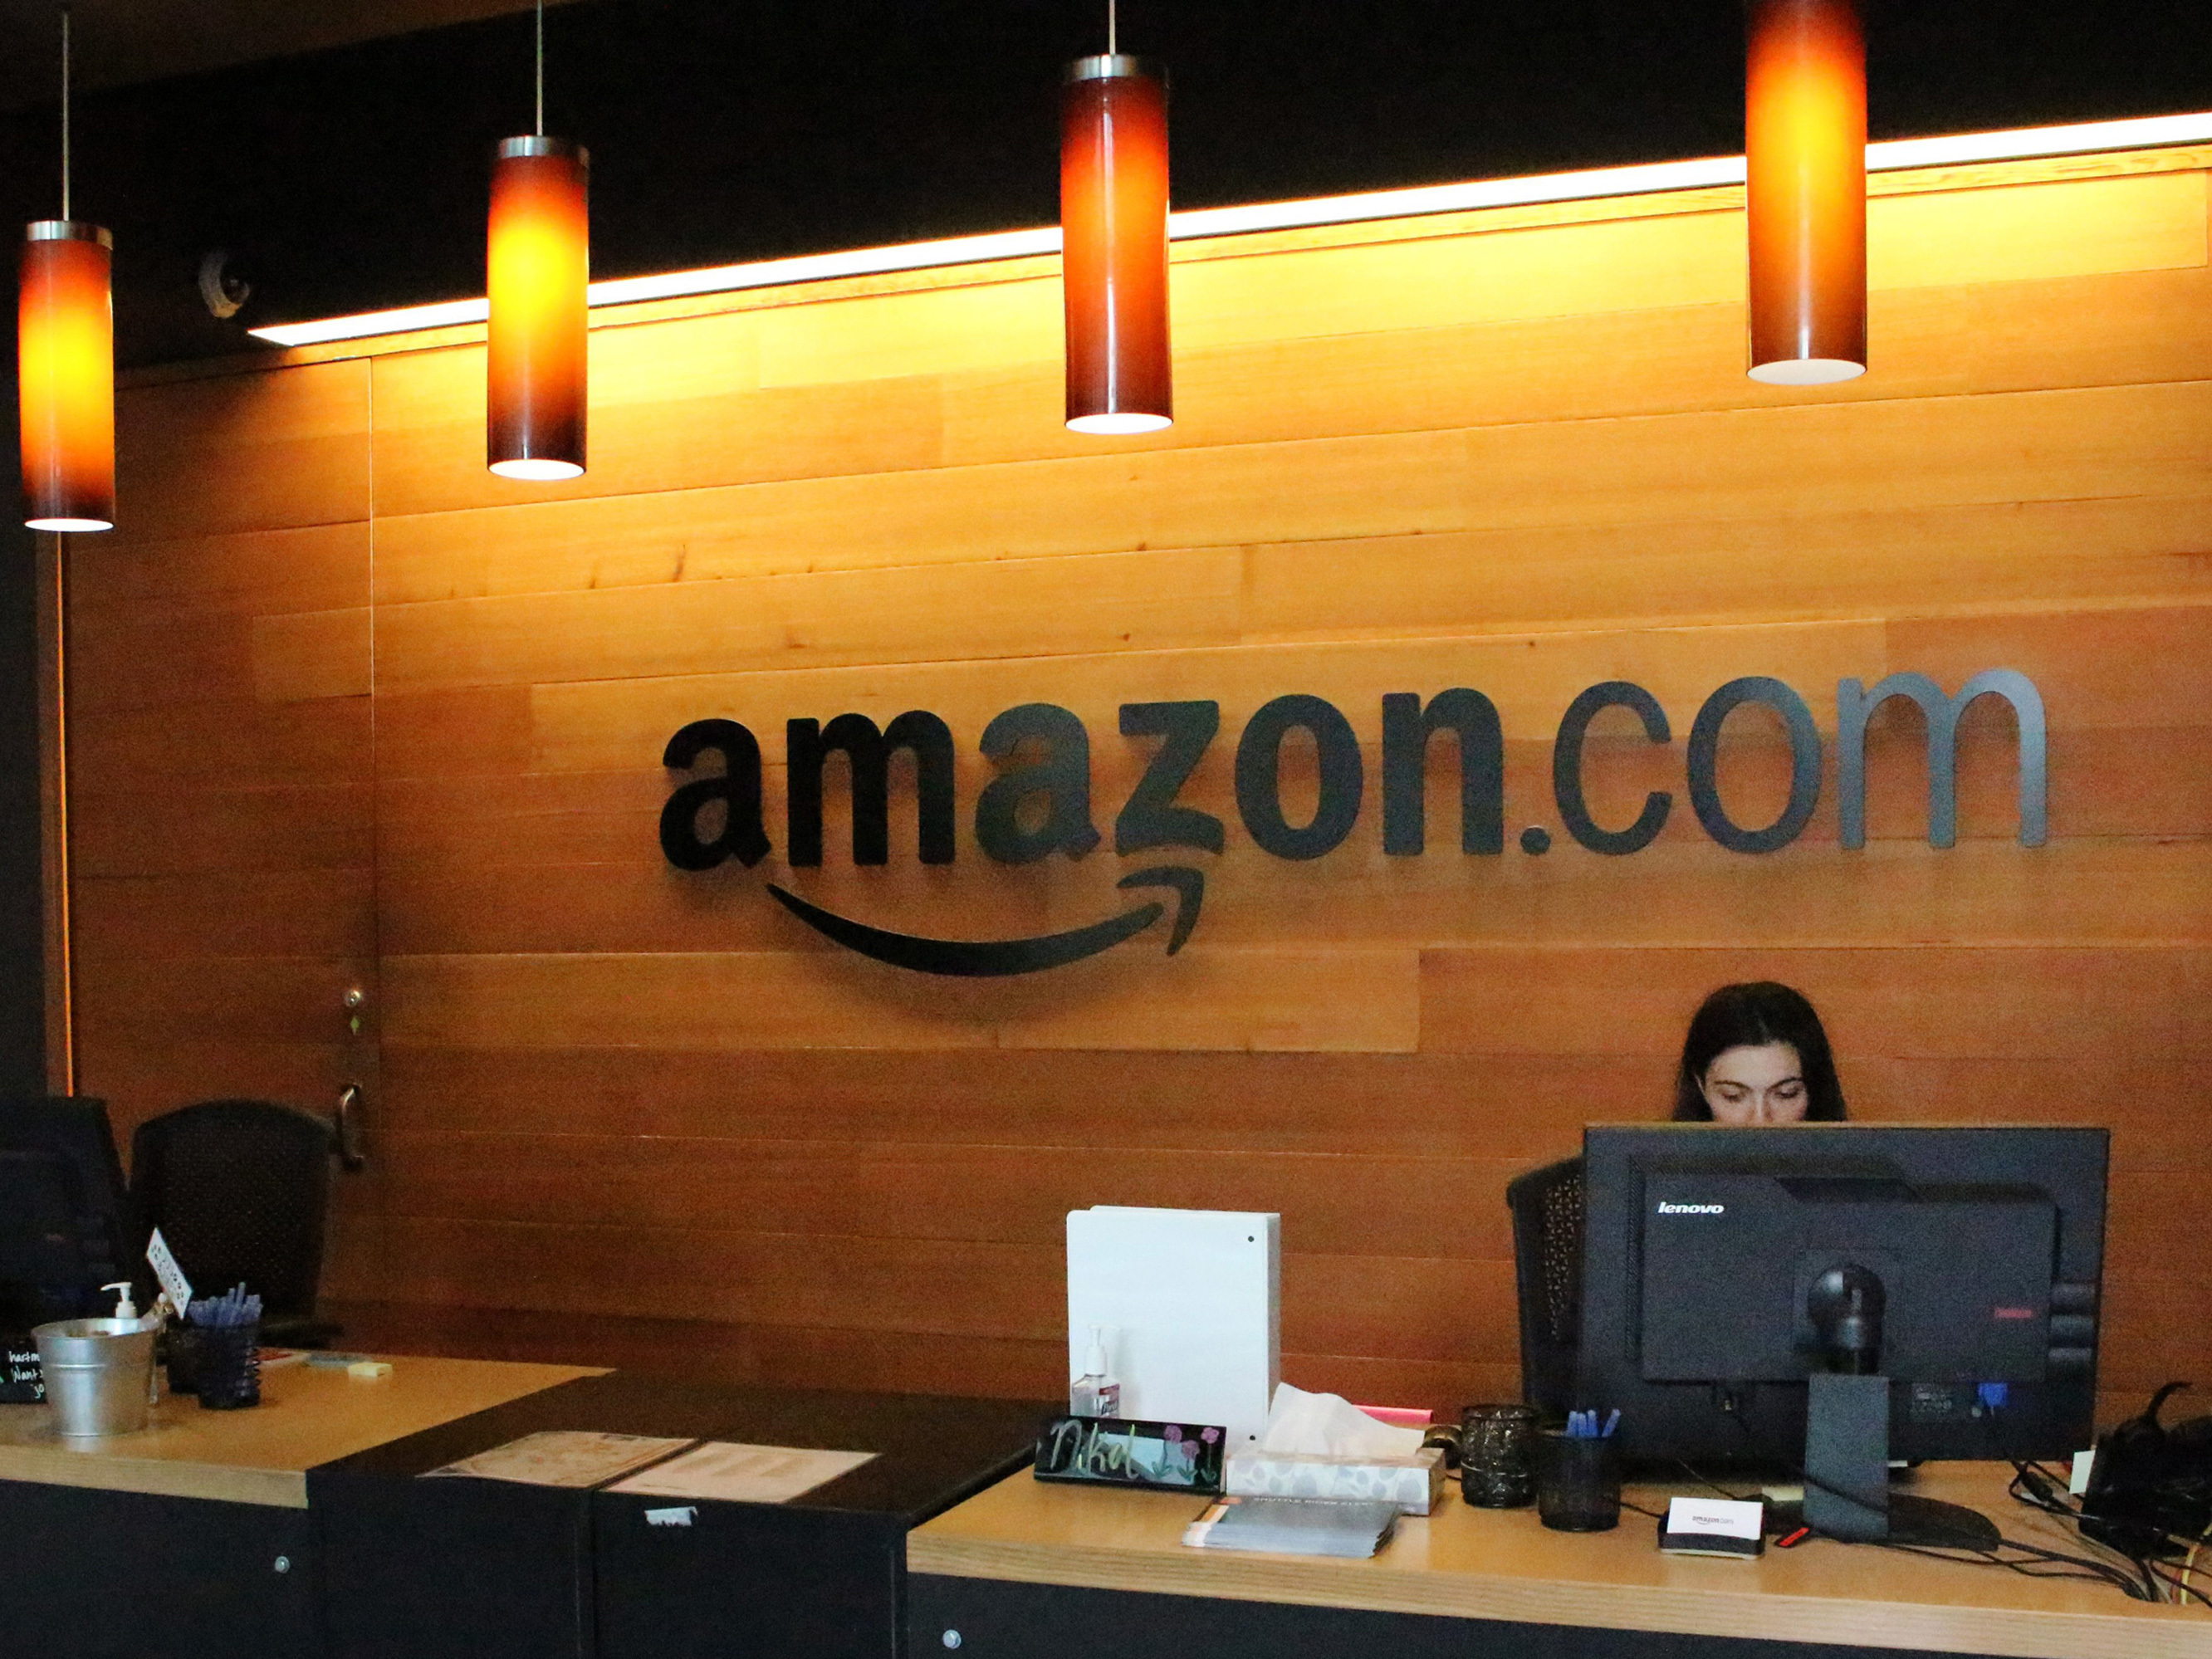 Cities Try Convincing Amazon They're Ready For Its New Headquarters